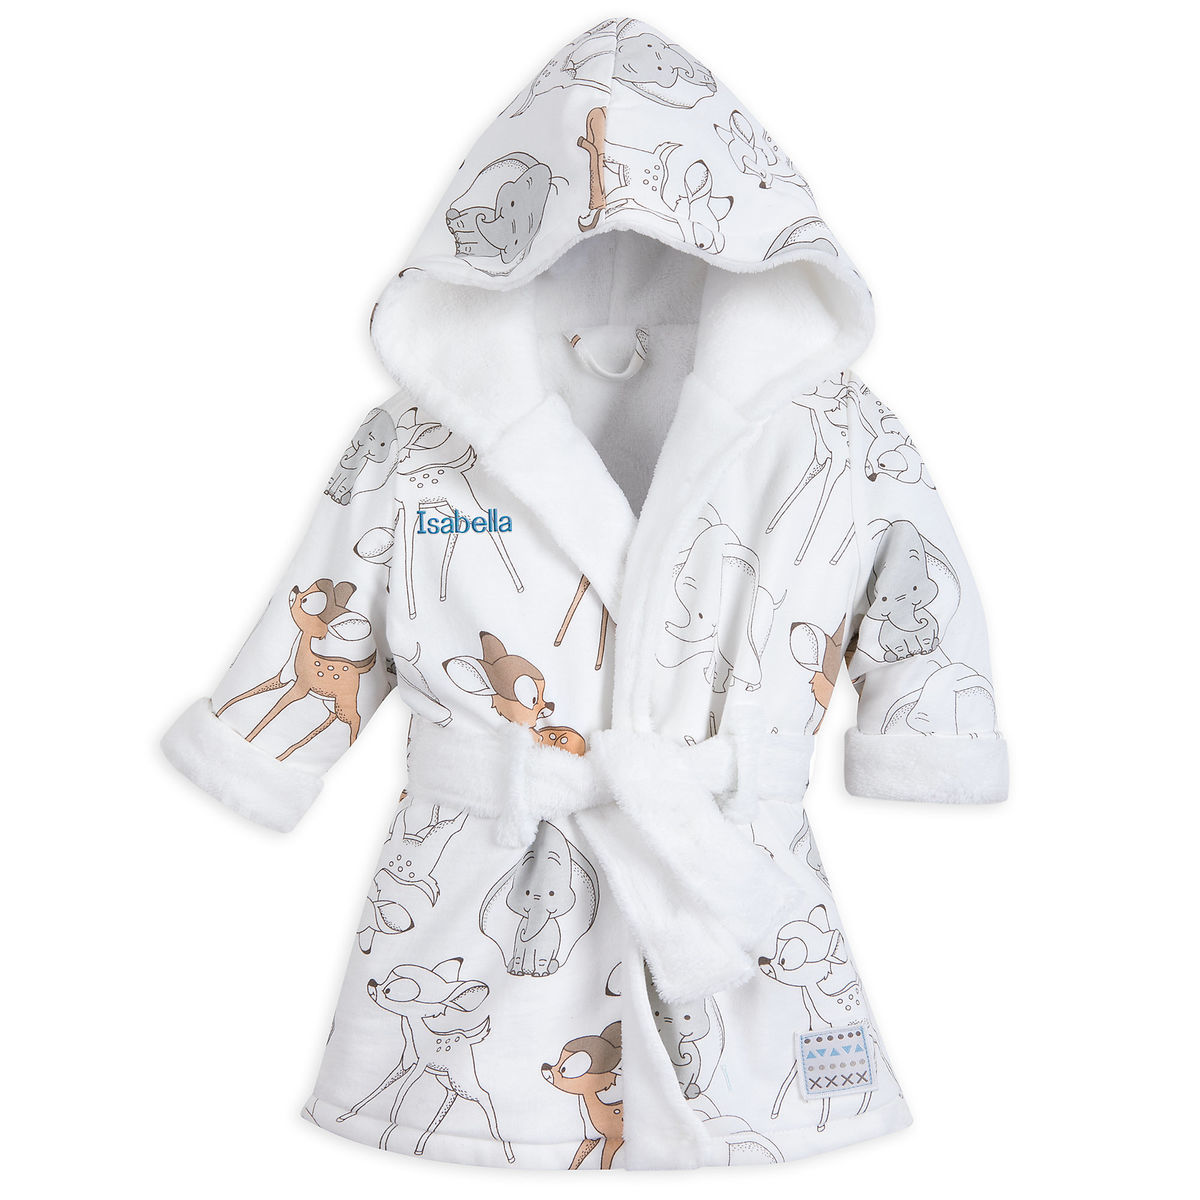 0bebe8e8b3 Product Image of Disney Classics Hooded Robe for Baby - Personalizable   1